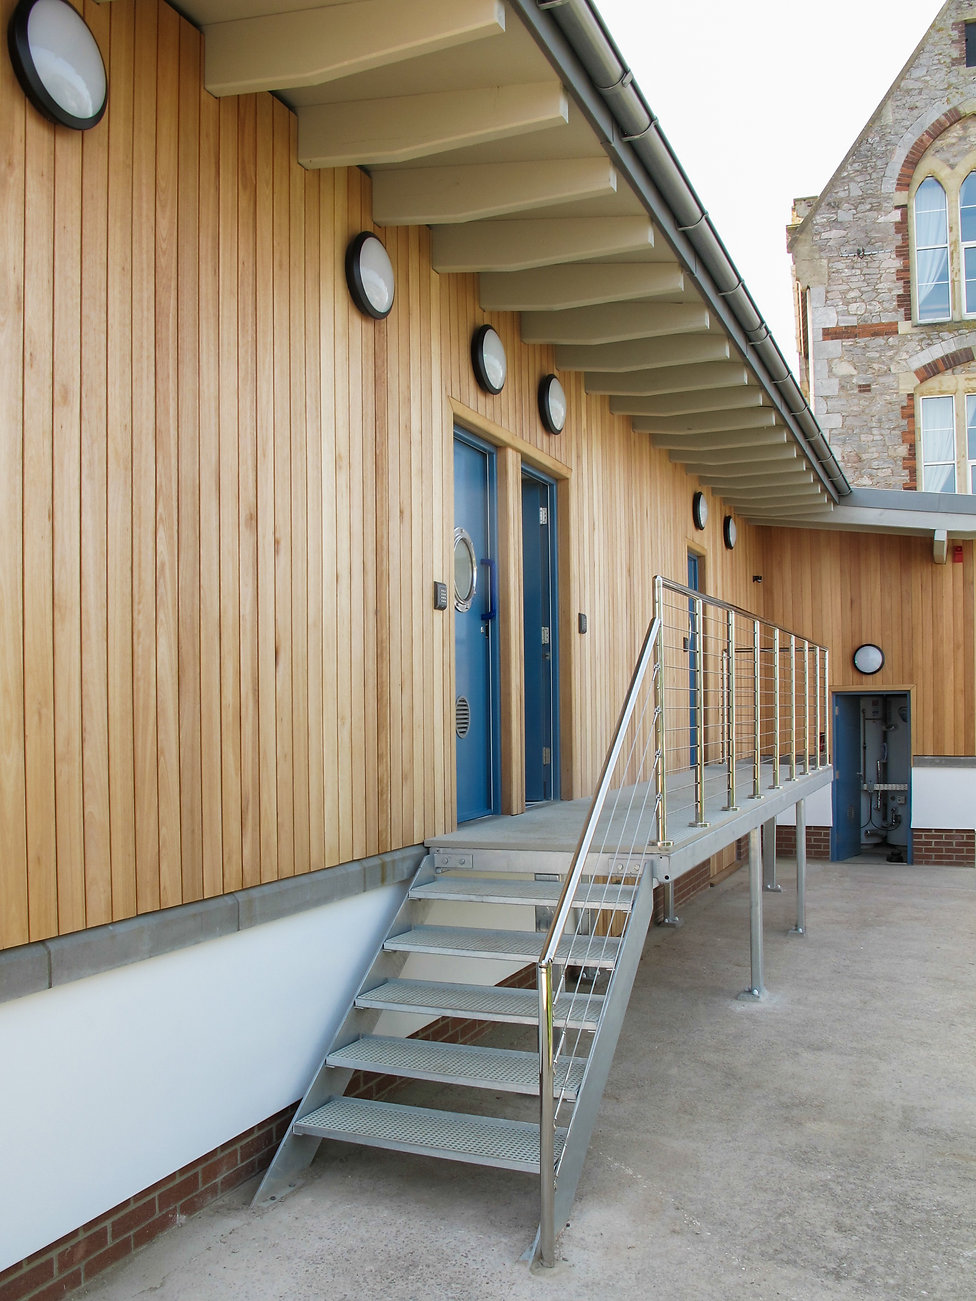 Vertical Timber Cladding with Stainless Steel Post and Wire Balustrading